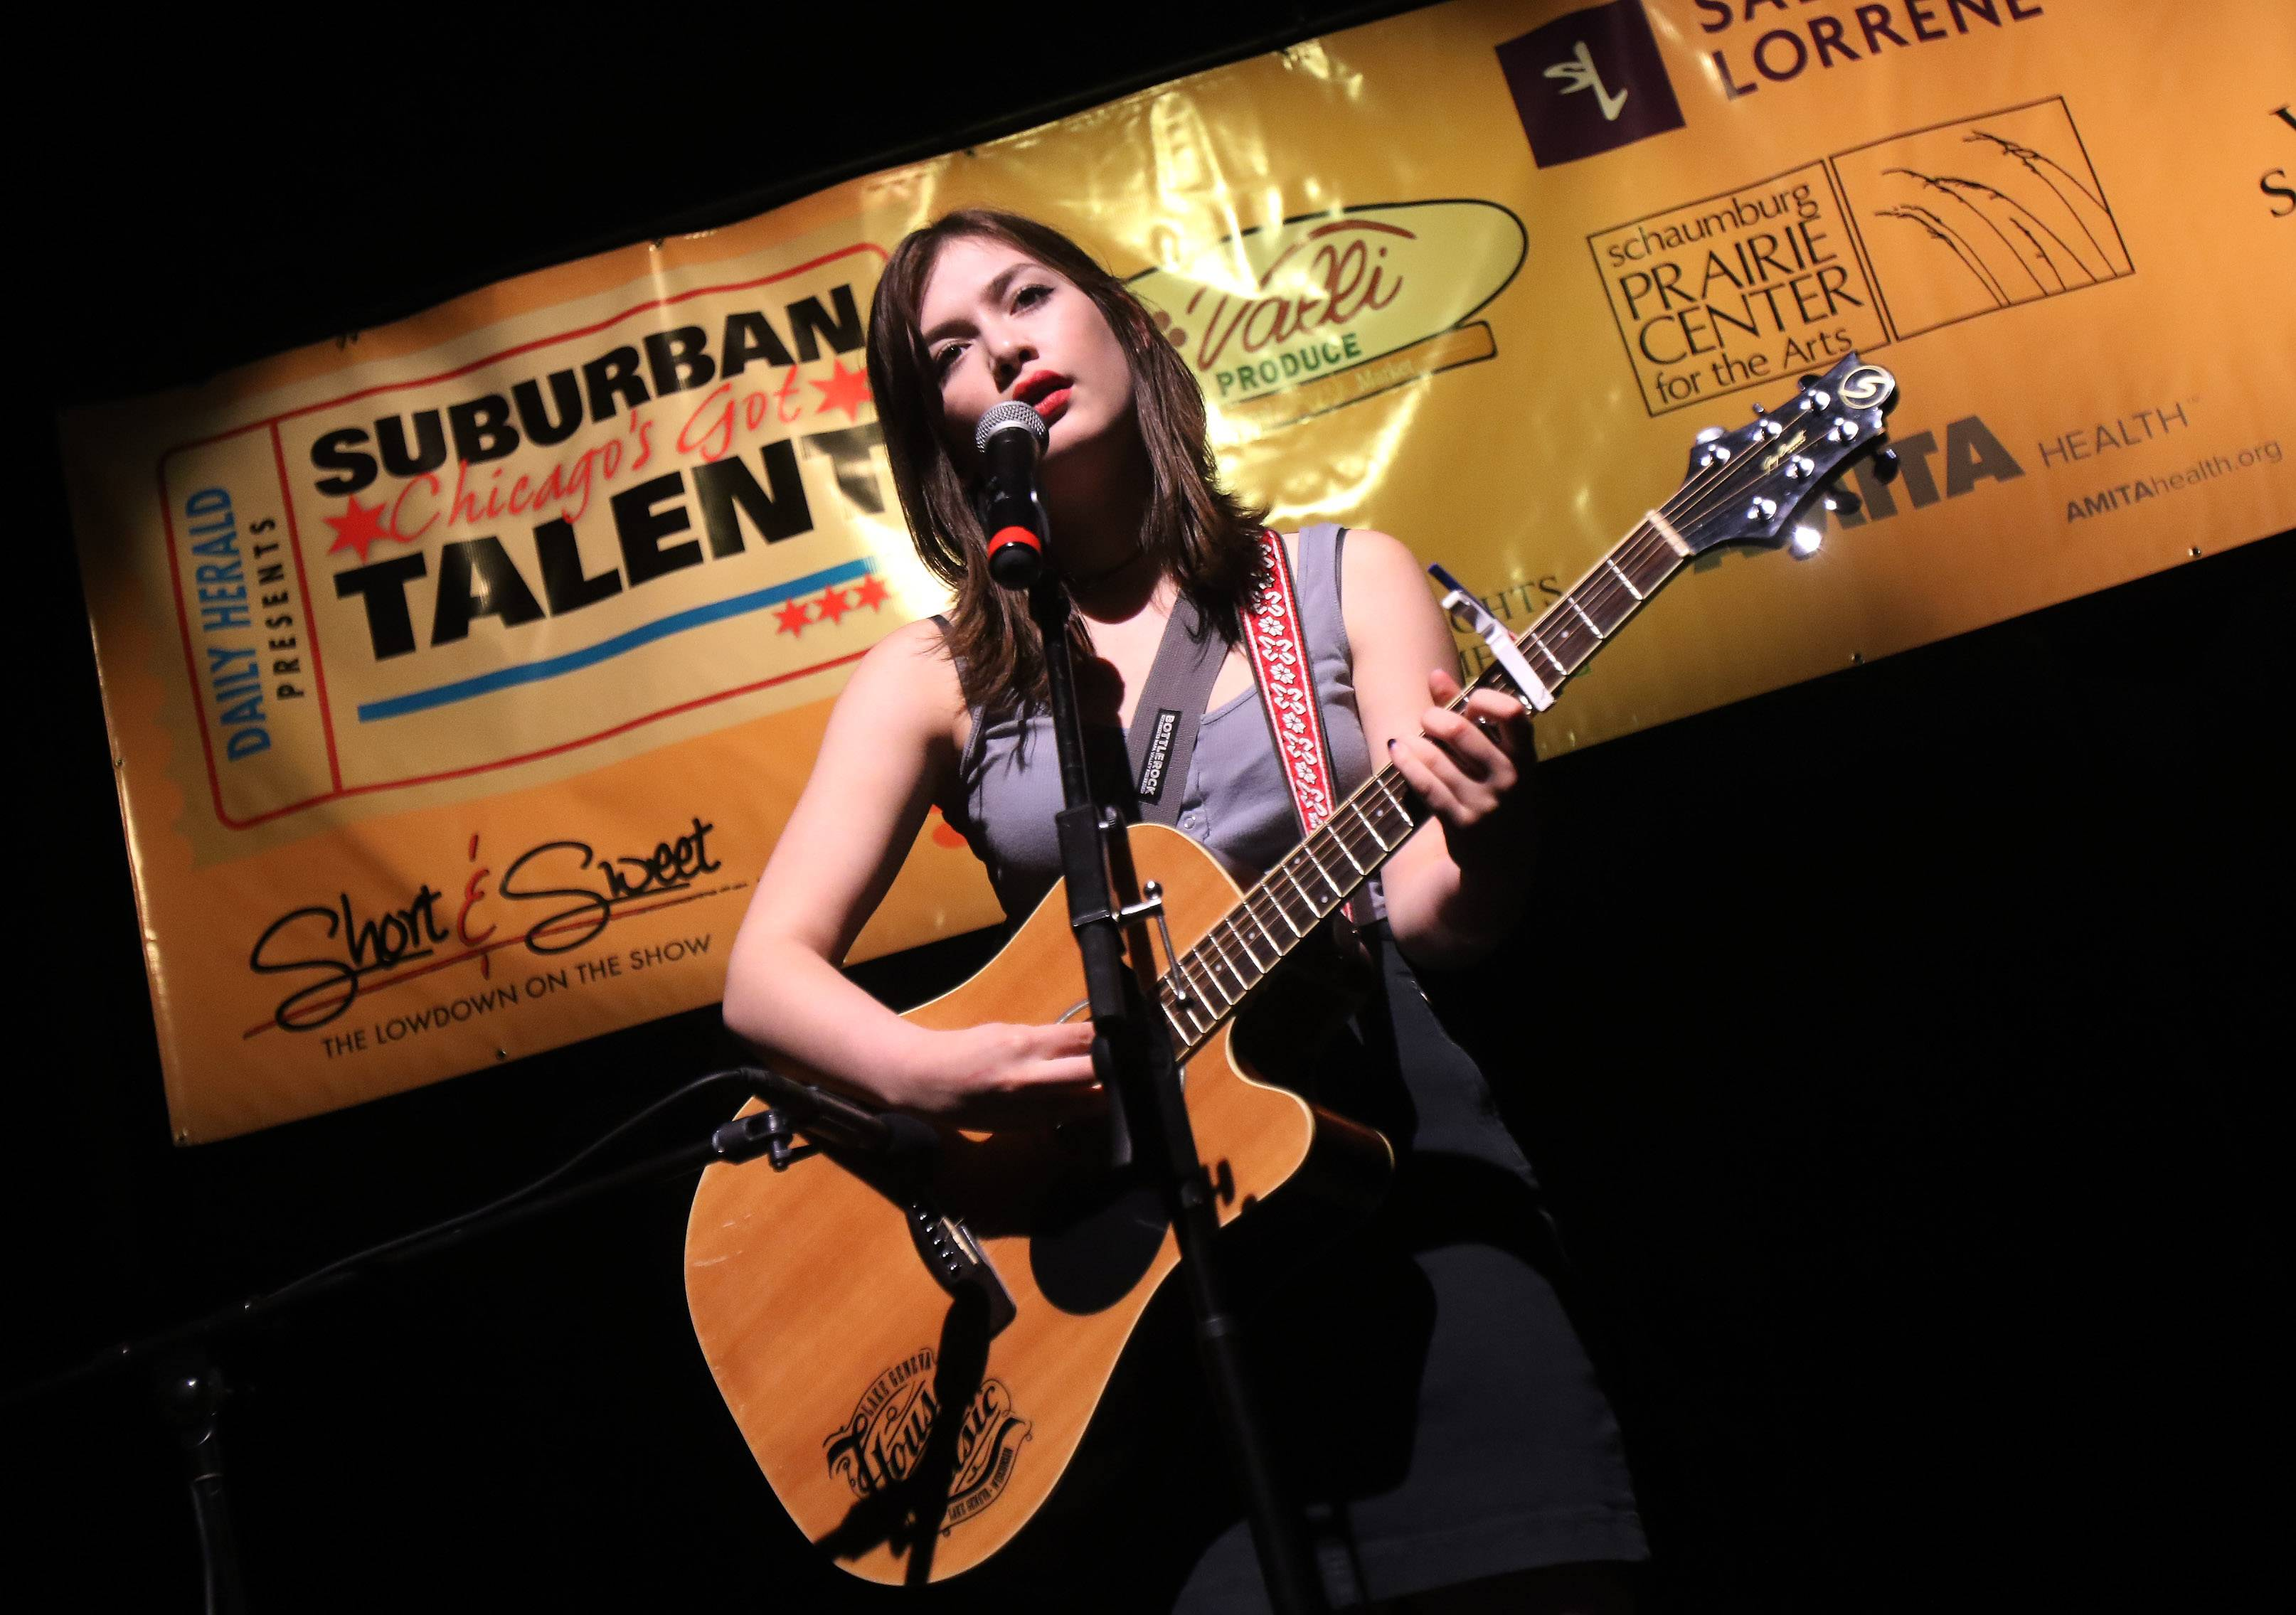 Rhea of Richmond sings as she plays guitar during the Suburban Chicago's Got Talent for 2016 competition at the Prairie Center for the Arts in Schaumburg. The winner of the final contest wins a STARter kit worth $5,000 with a chance to be an opening act at the Arcada Theatre.